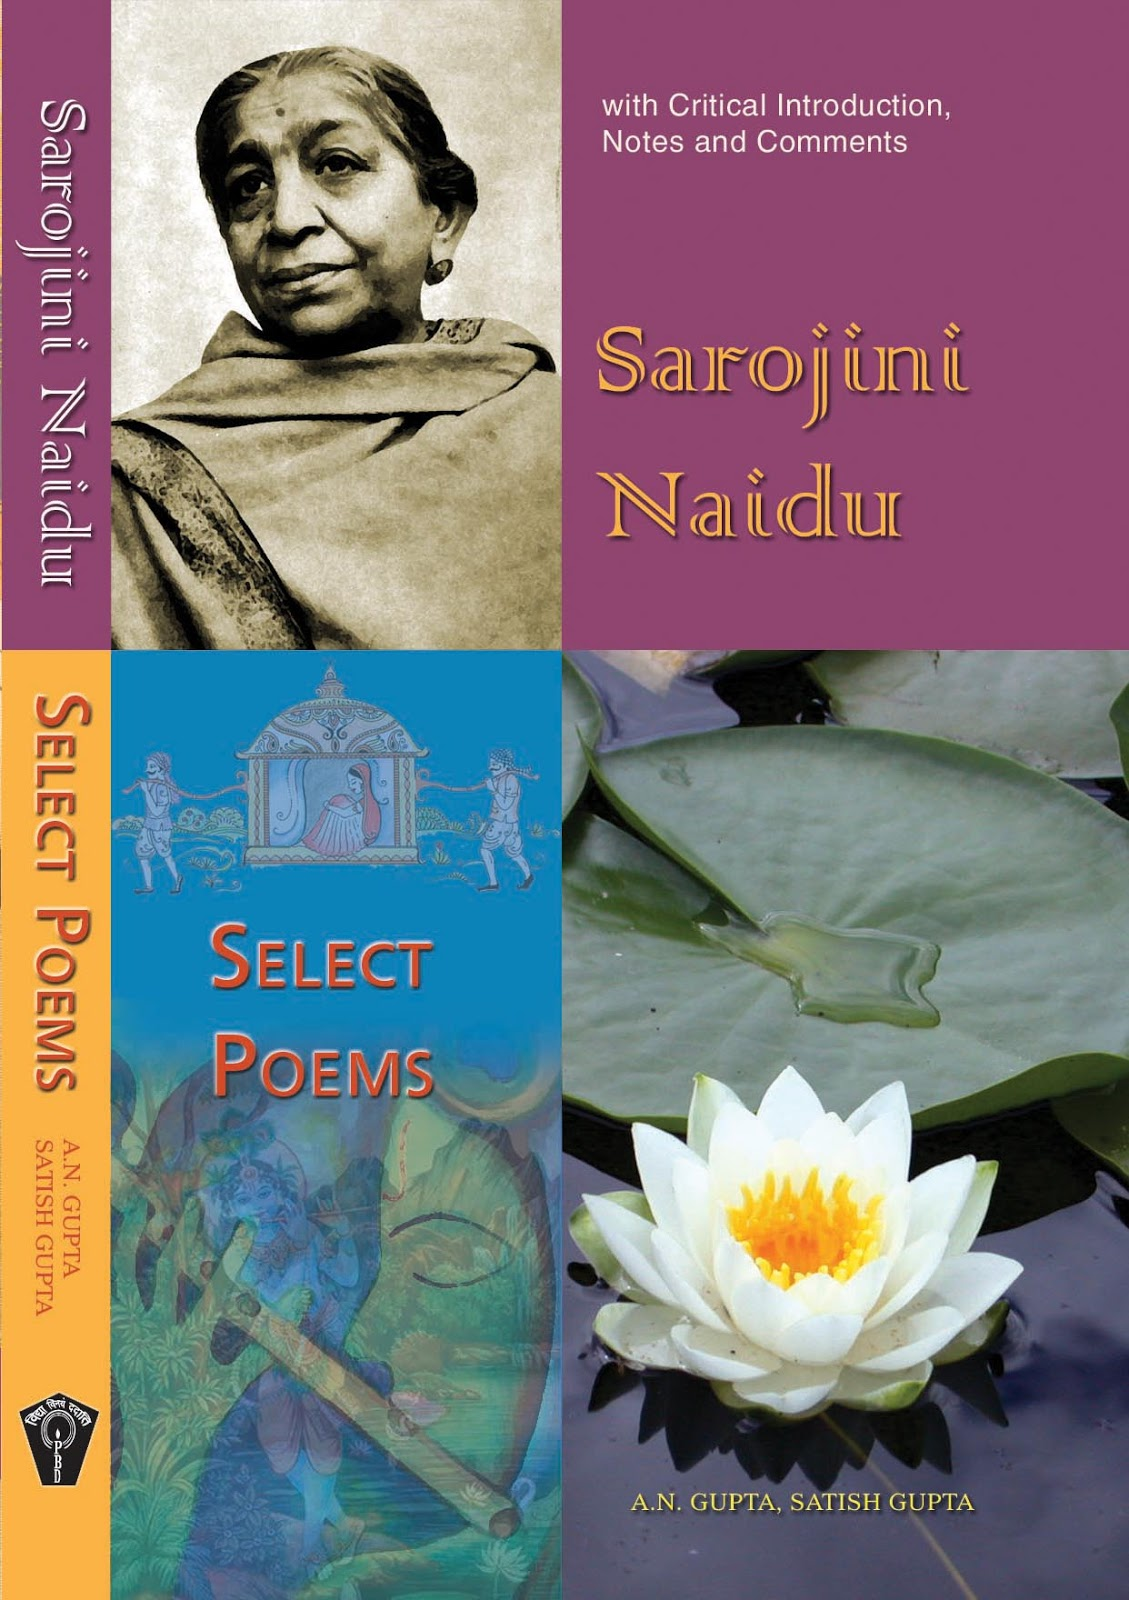 Prakash book depot bareilly views and news sarojini naidu sarojini naidu select poems izmirmasajfo